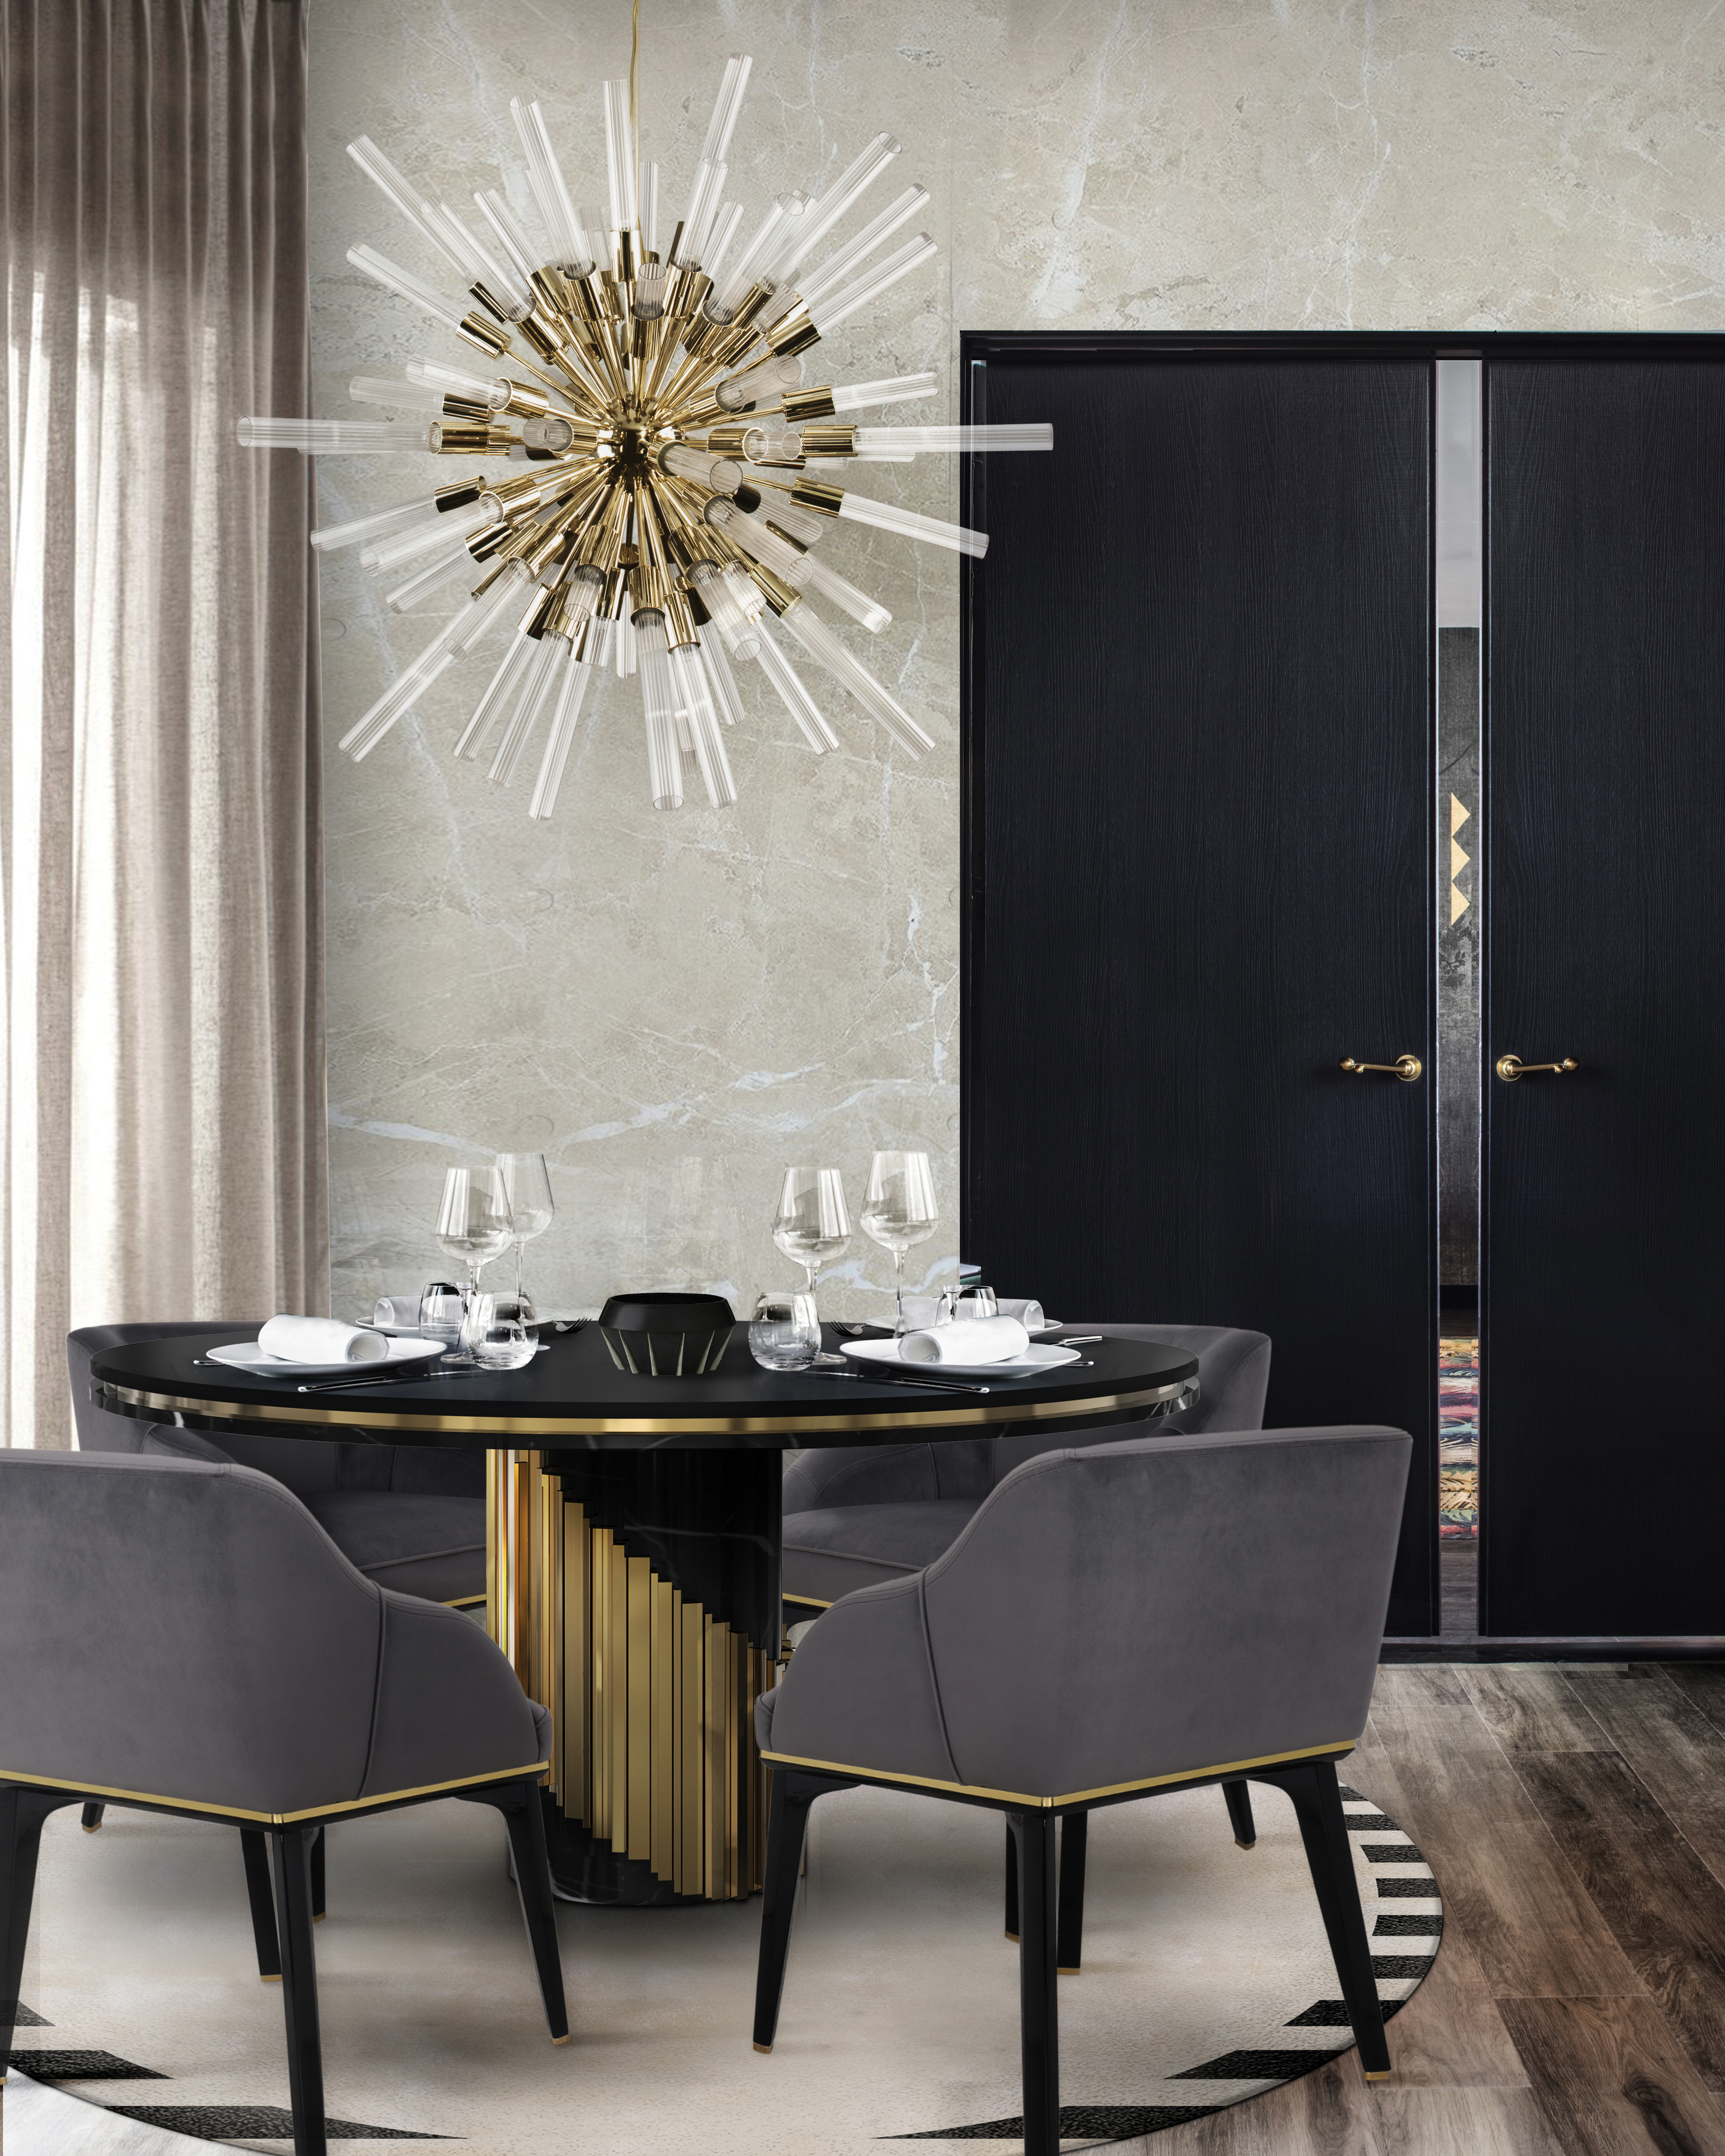 Interior Design Trends: Mid-Century Rounded interior design trends Interior Design Trends: Mid-Century Rounded waterfall sputnik suspension cover 02